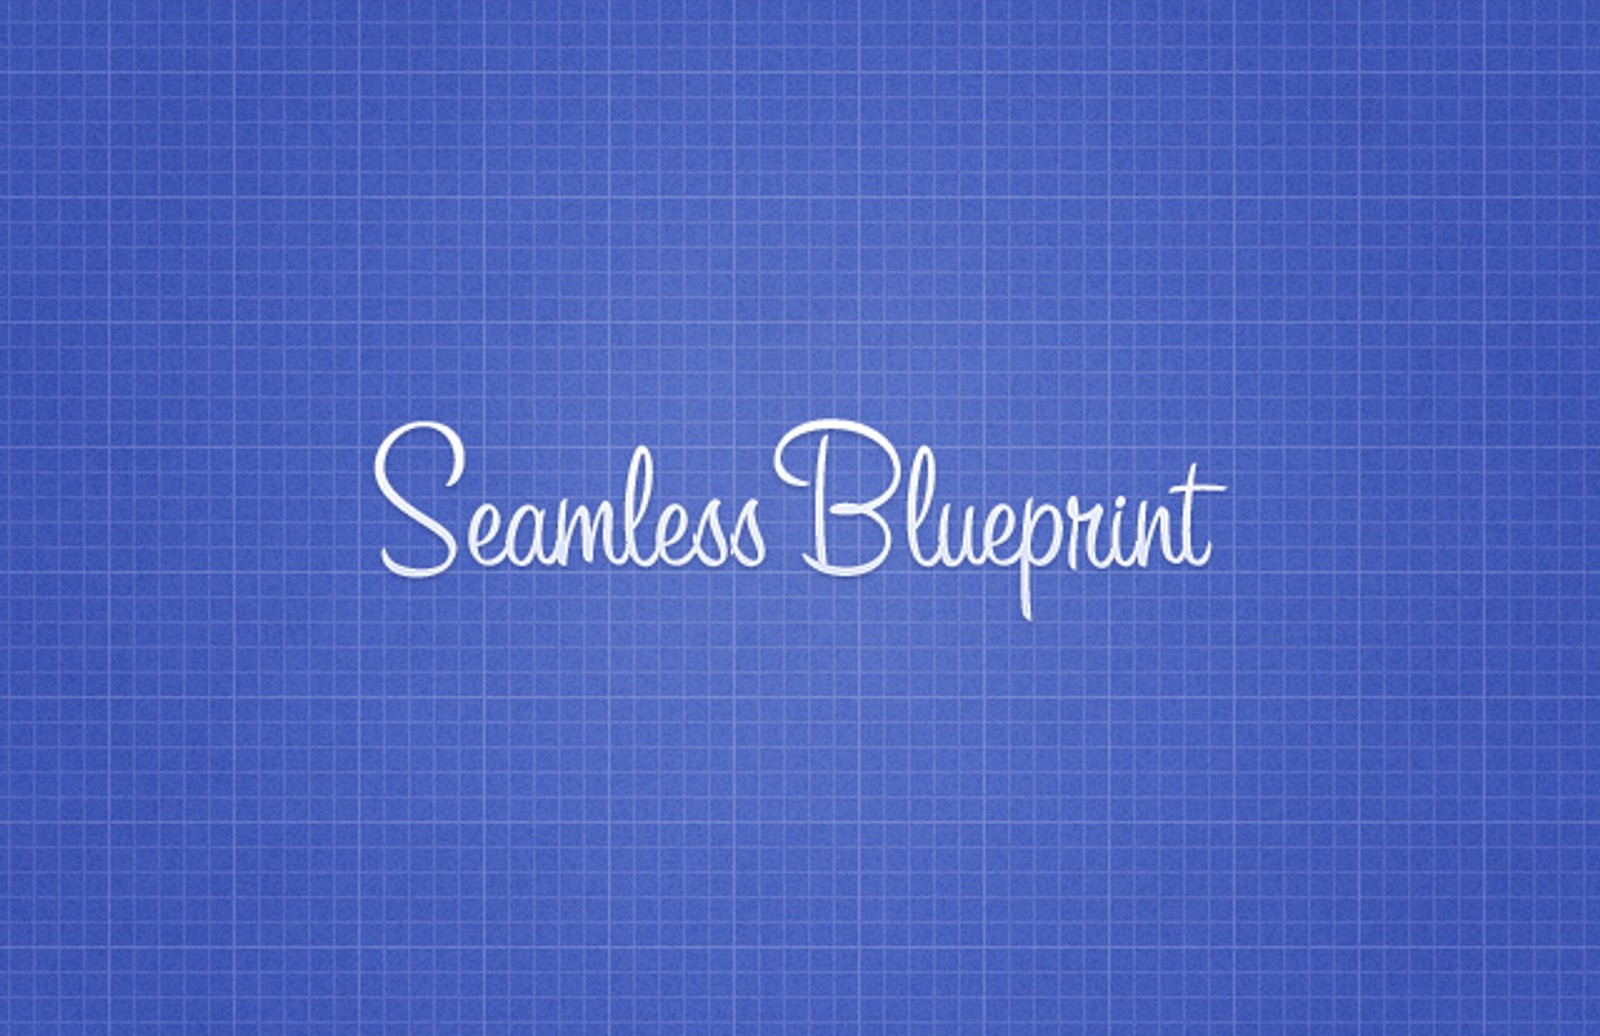 Seamless blueprint textures medialoot seamless blueprint textures preview1 malvernweather